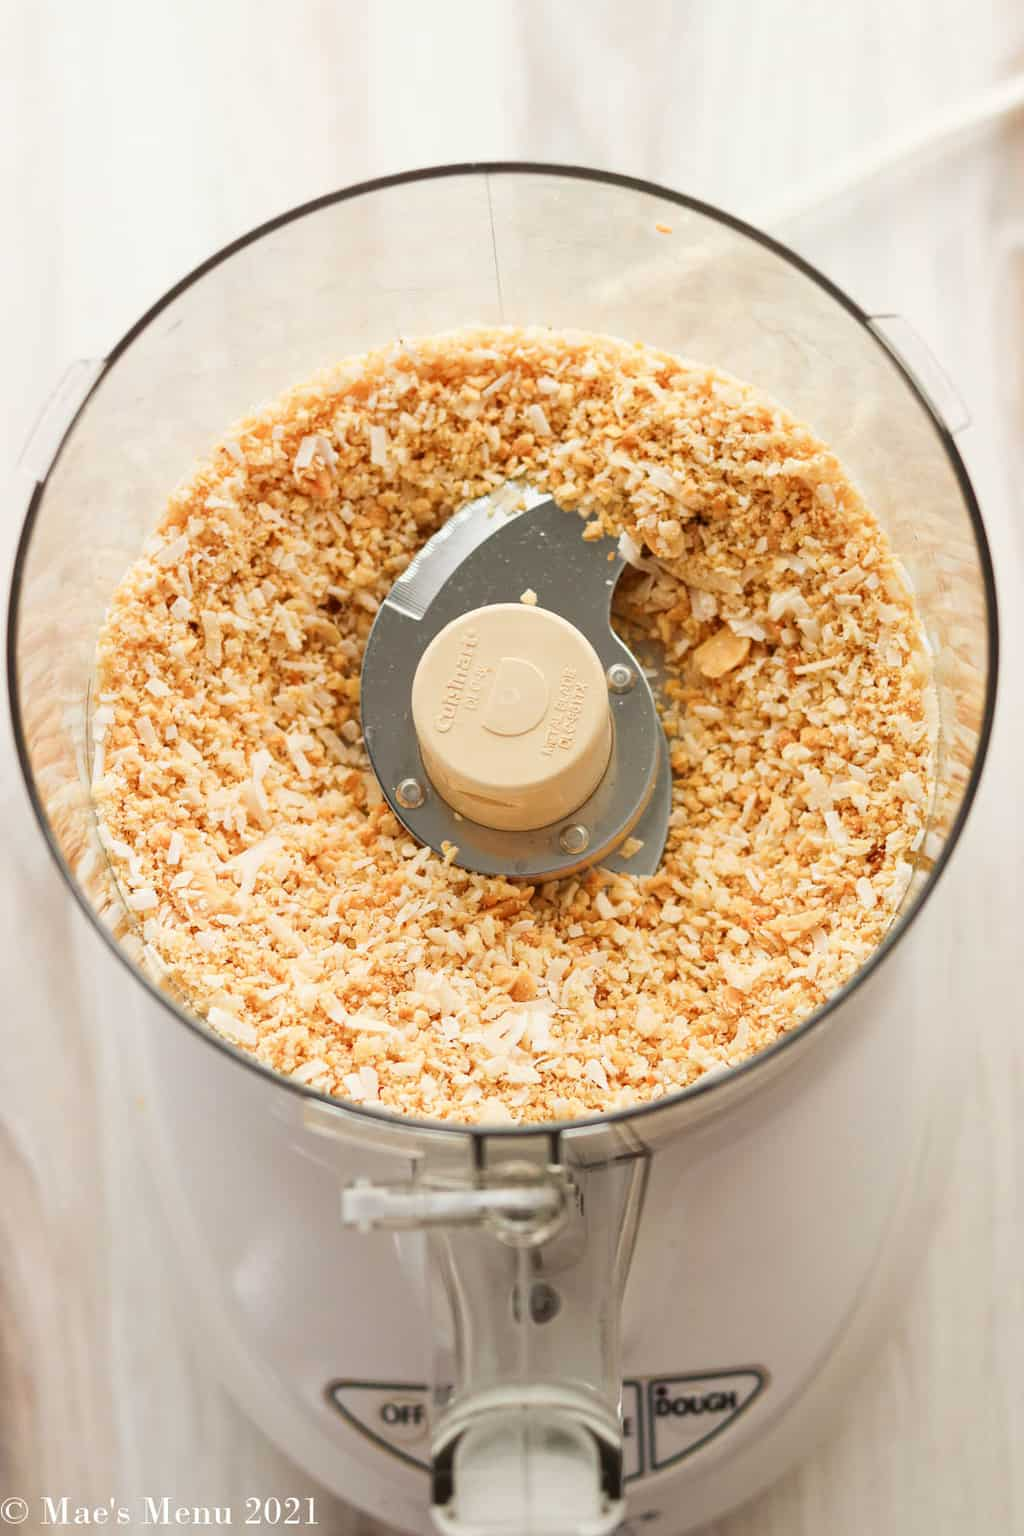 pulverized peanuts and dried coconut in a food processor